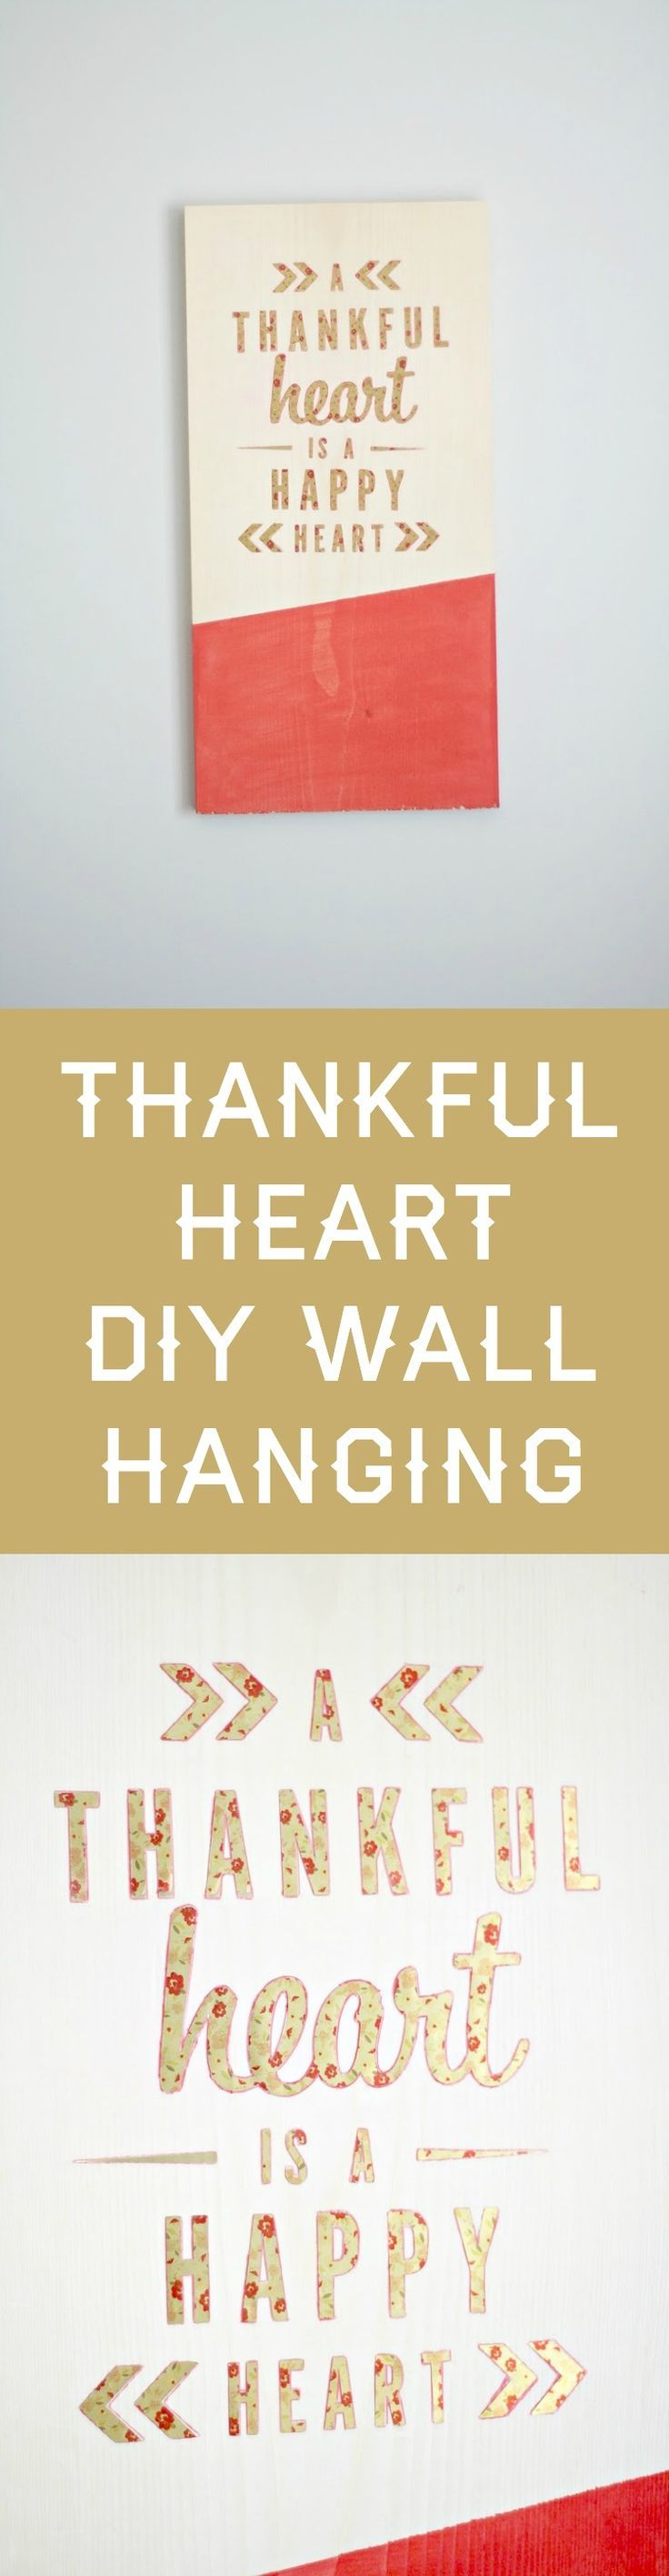 304 best wall decor ideas free printables images on pinterest 304 best wall decor ideas free printables images on pinterest free printables creative crafts and diy organization amipublicfo Image collections